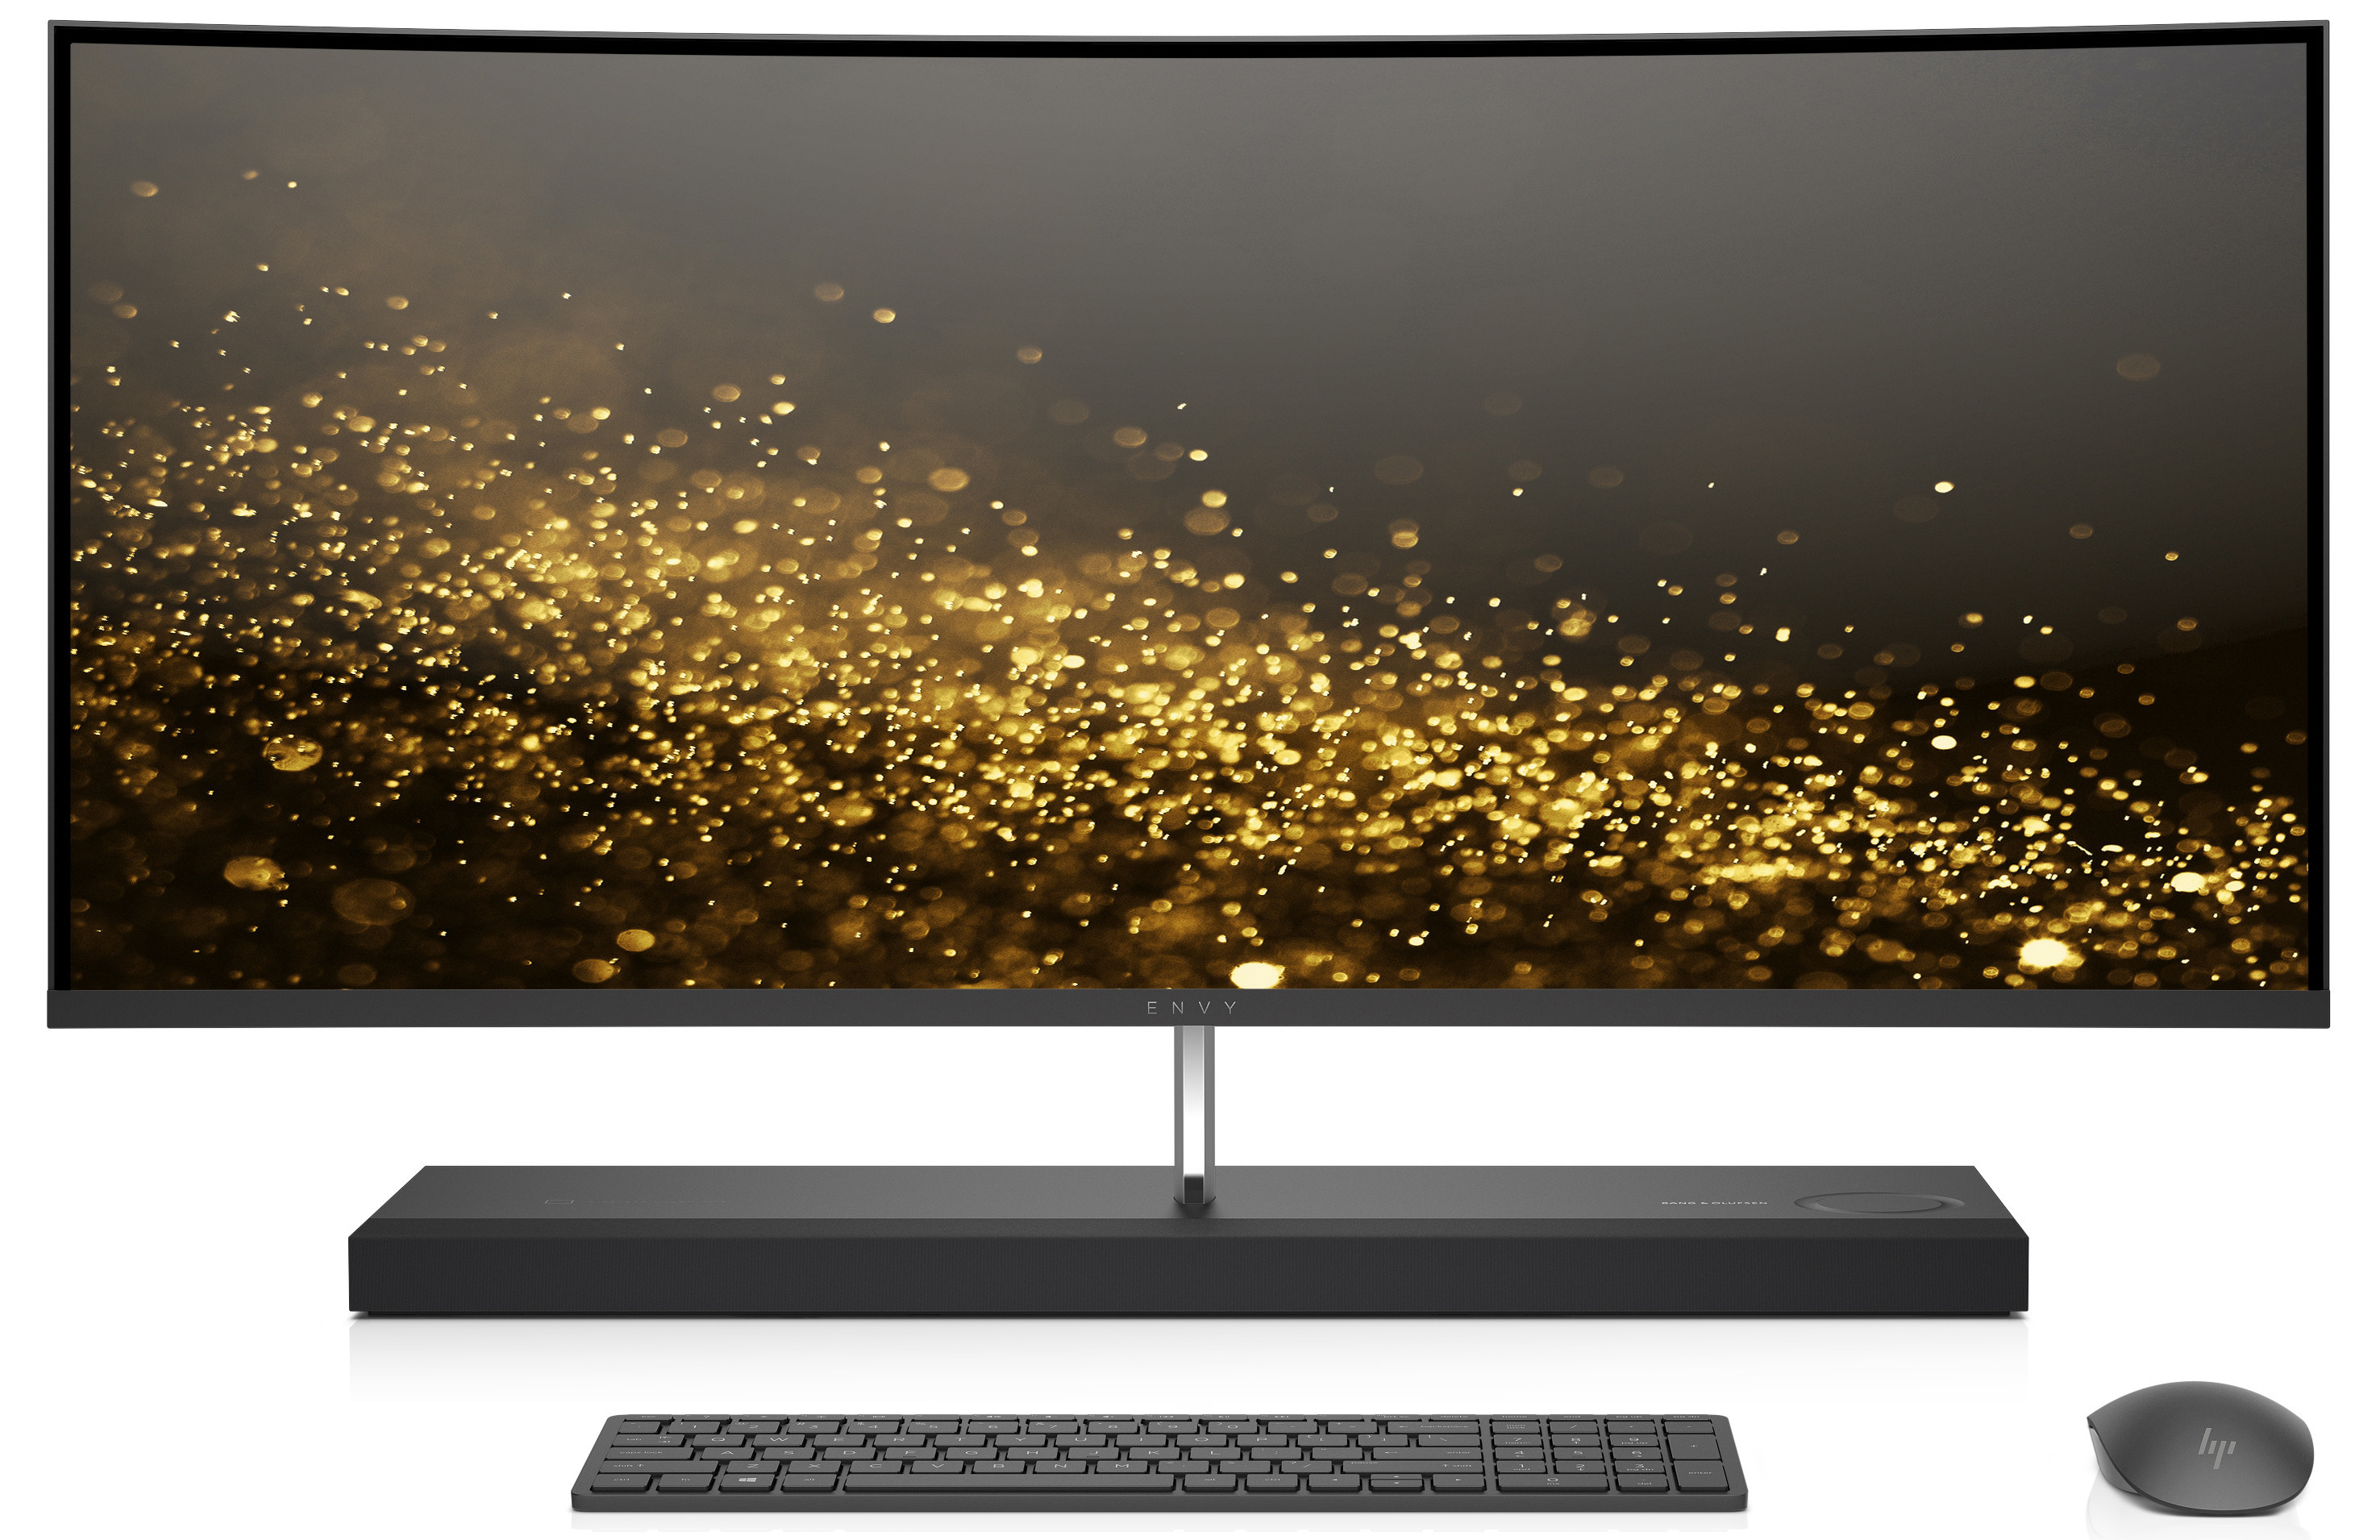 hp announces the envy curve aio 34 and a new curved monitor neowin. Black Bedroom Furniture Sets. Home Design Ideas